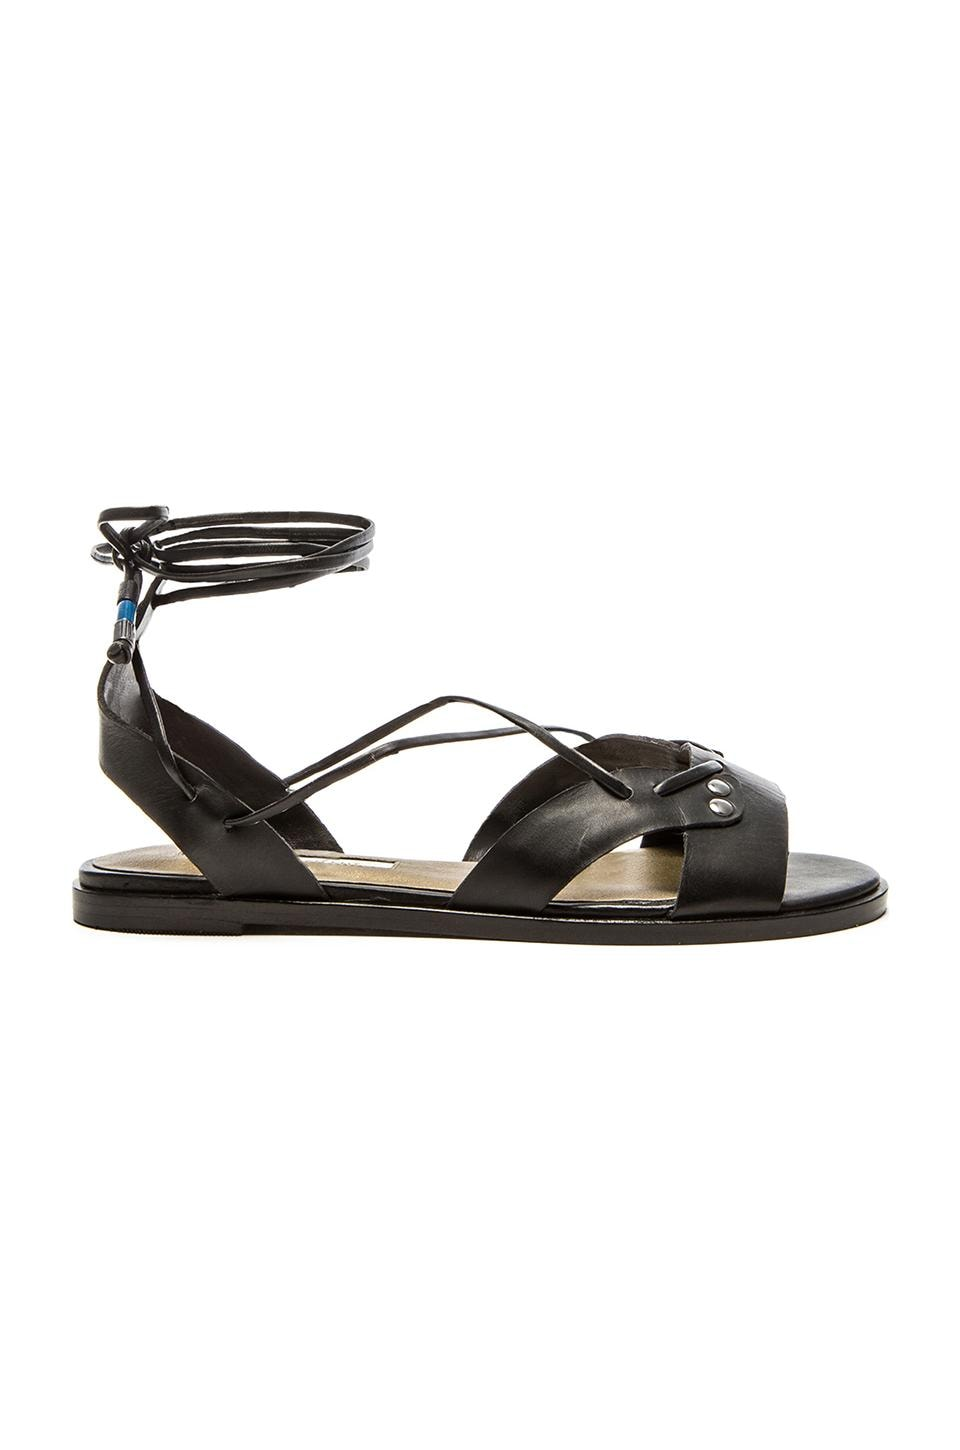 Twelfth Street By Cynthia Vincent Fantine Sandal in Black